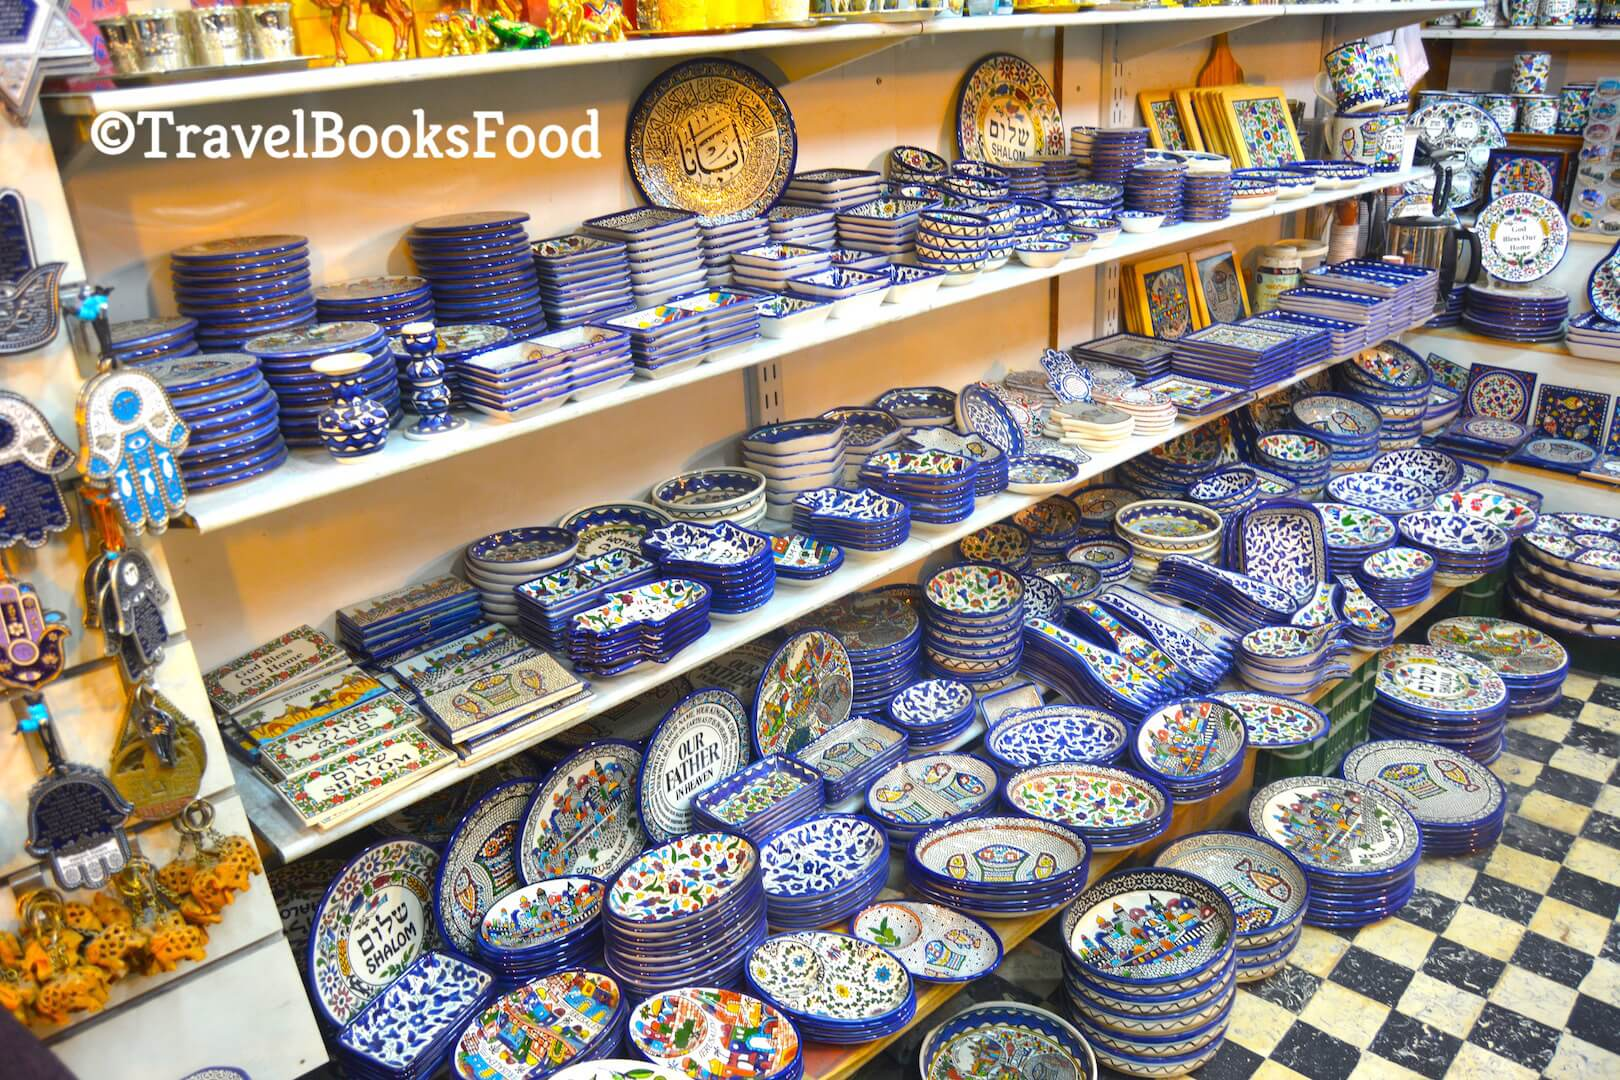 A shop in Jerusalem selling souvenirs and Armenian crockery